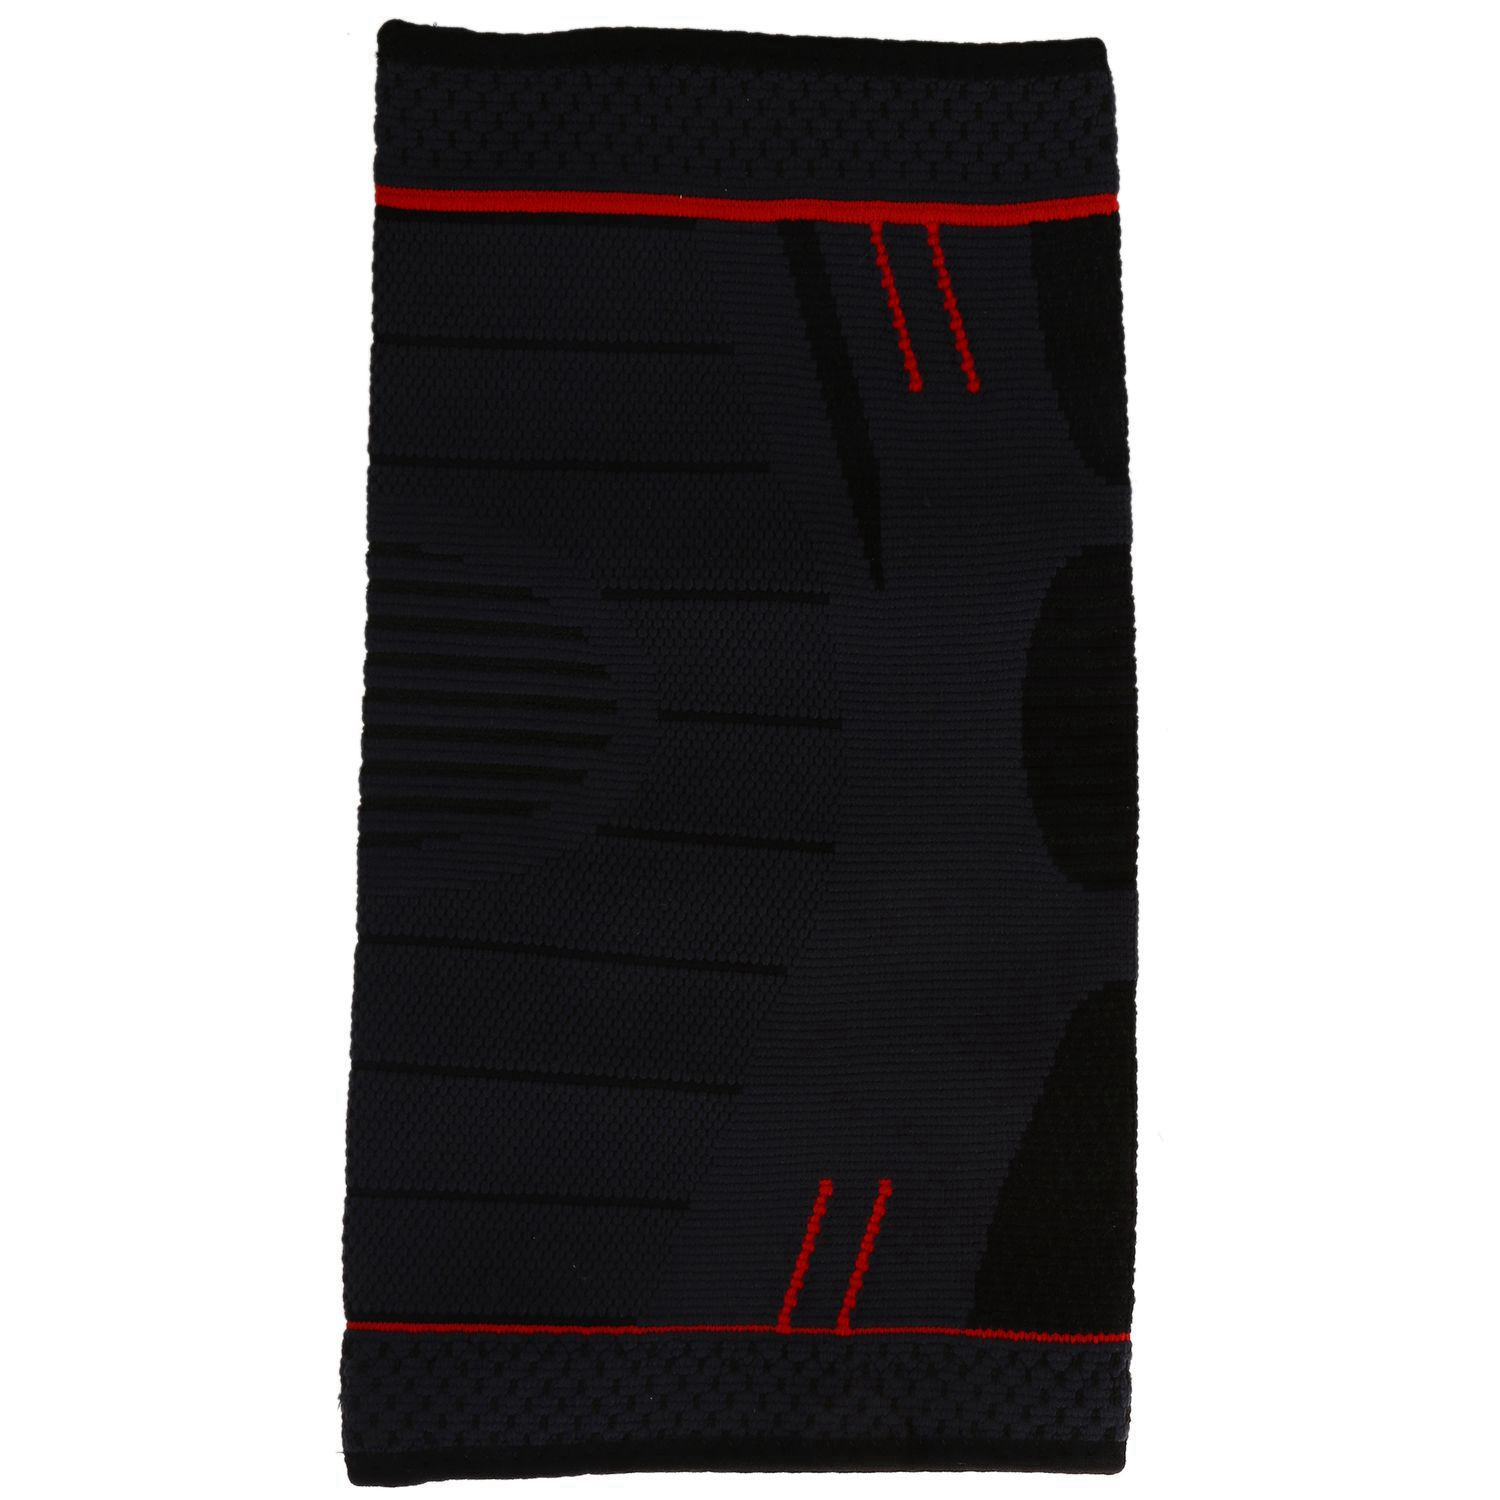 1 men and women sports knee-lift sporting goods outdoor riding protective gear warm breathable nylon knee HTB1gx7CapGWBuNjy0Fbq6z4sXXaY